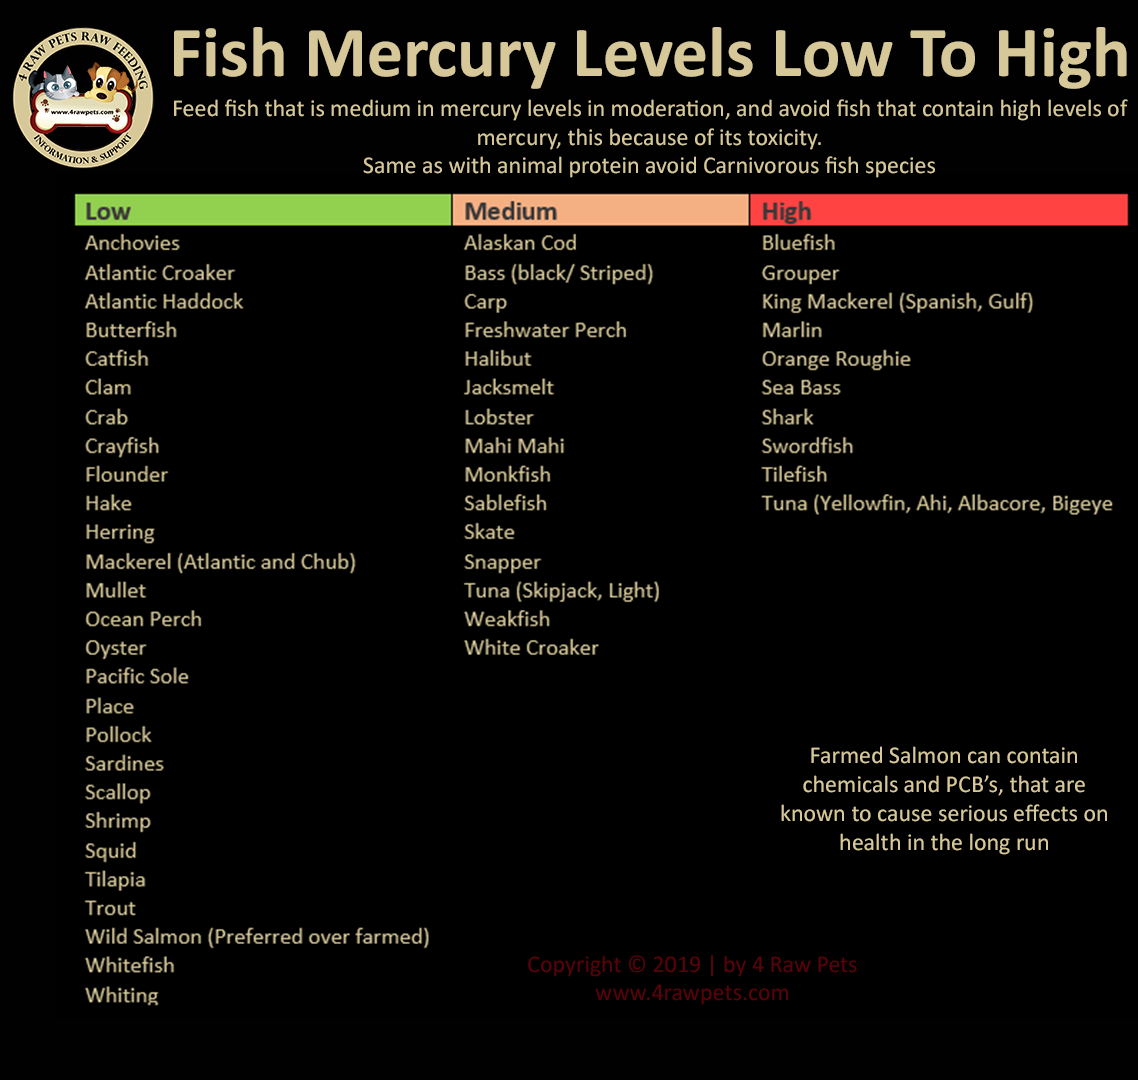 Fish-mercury-levels-low-to-high